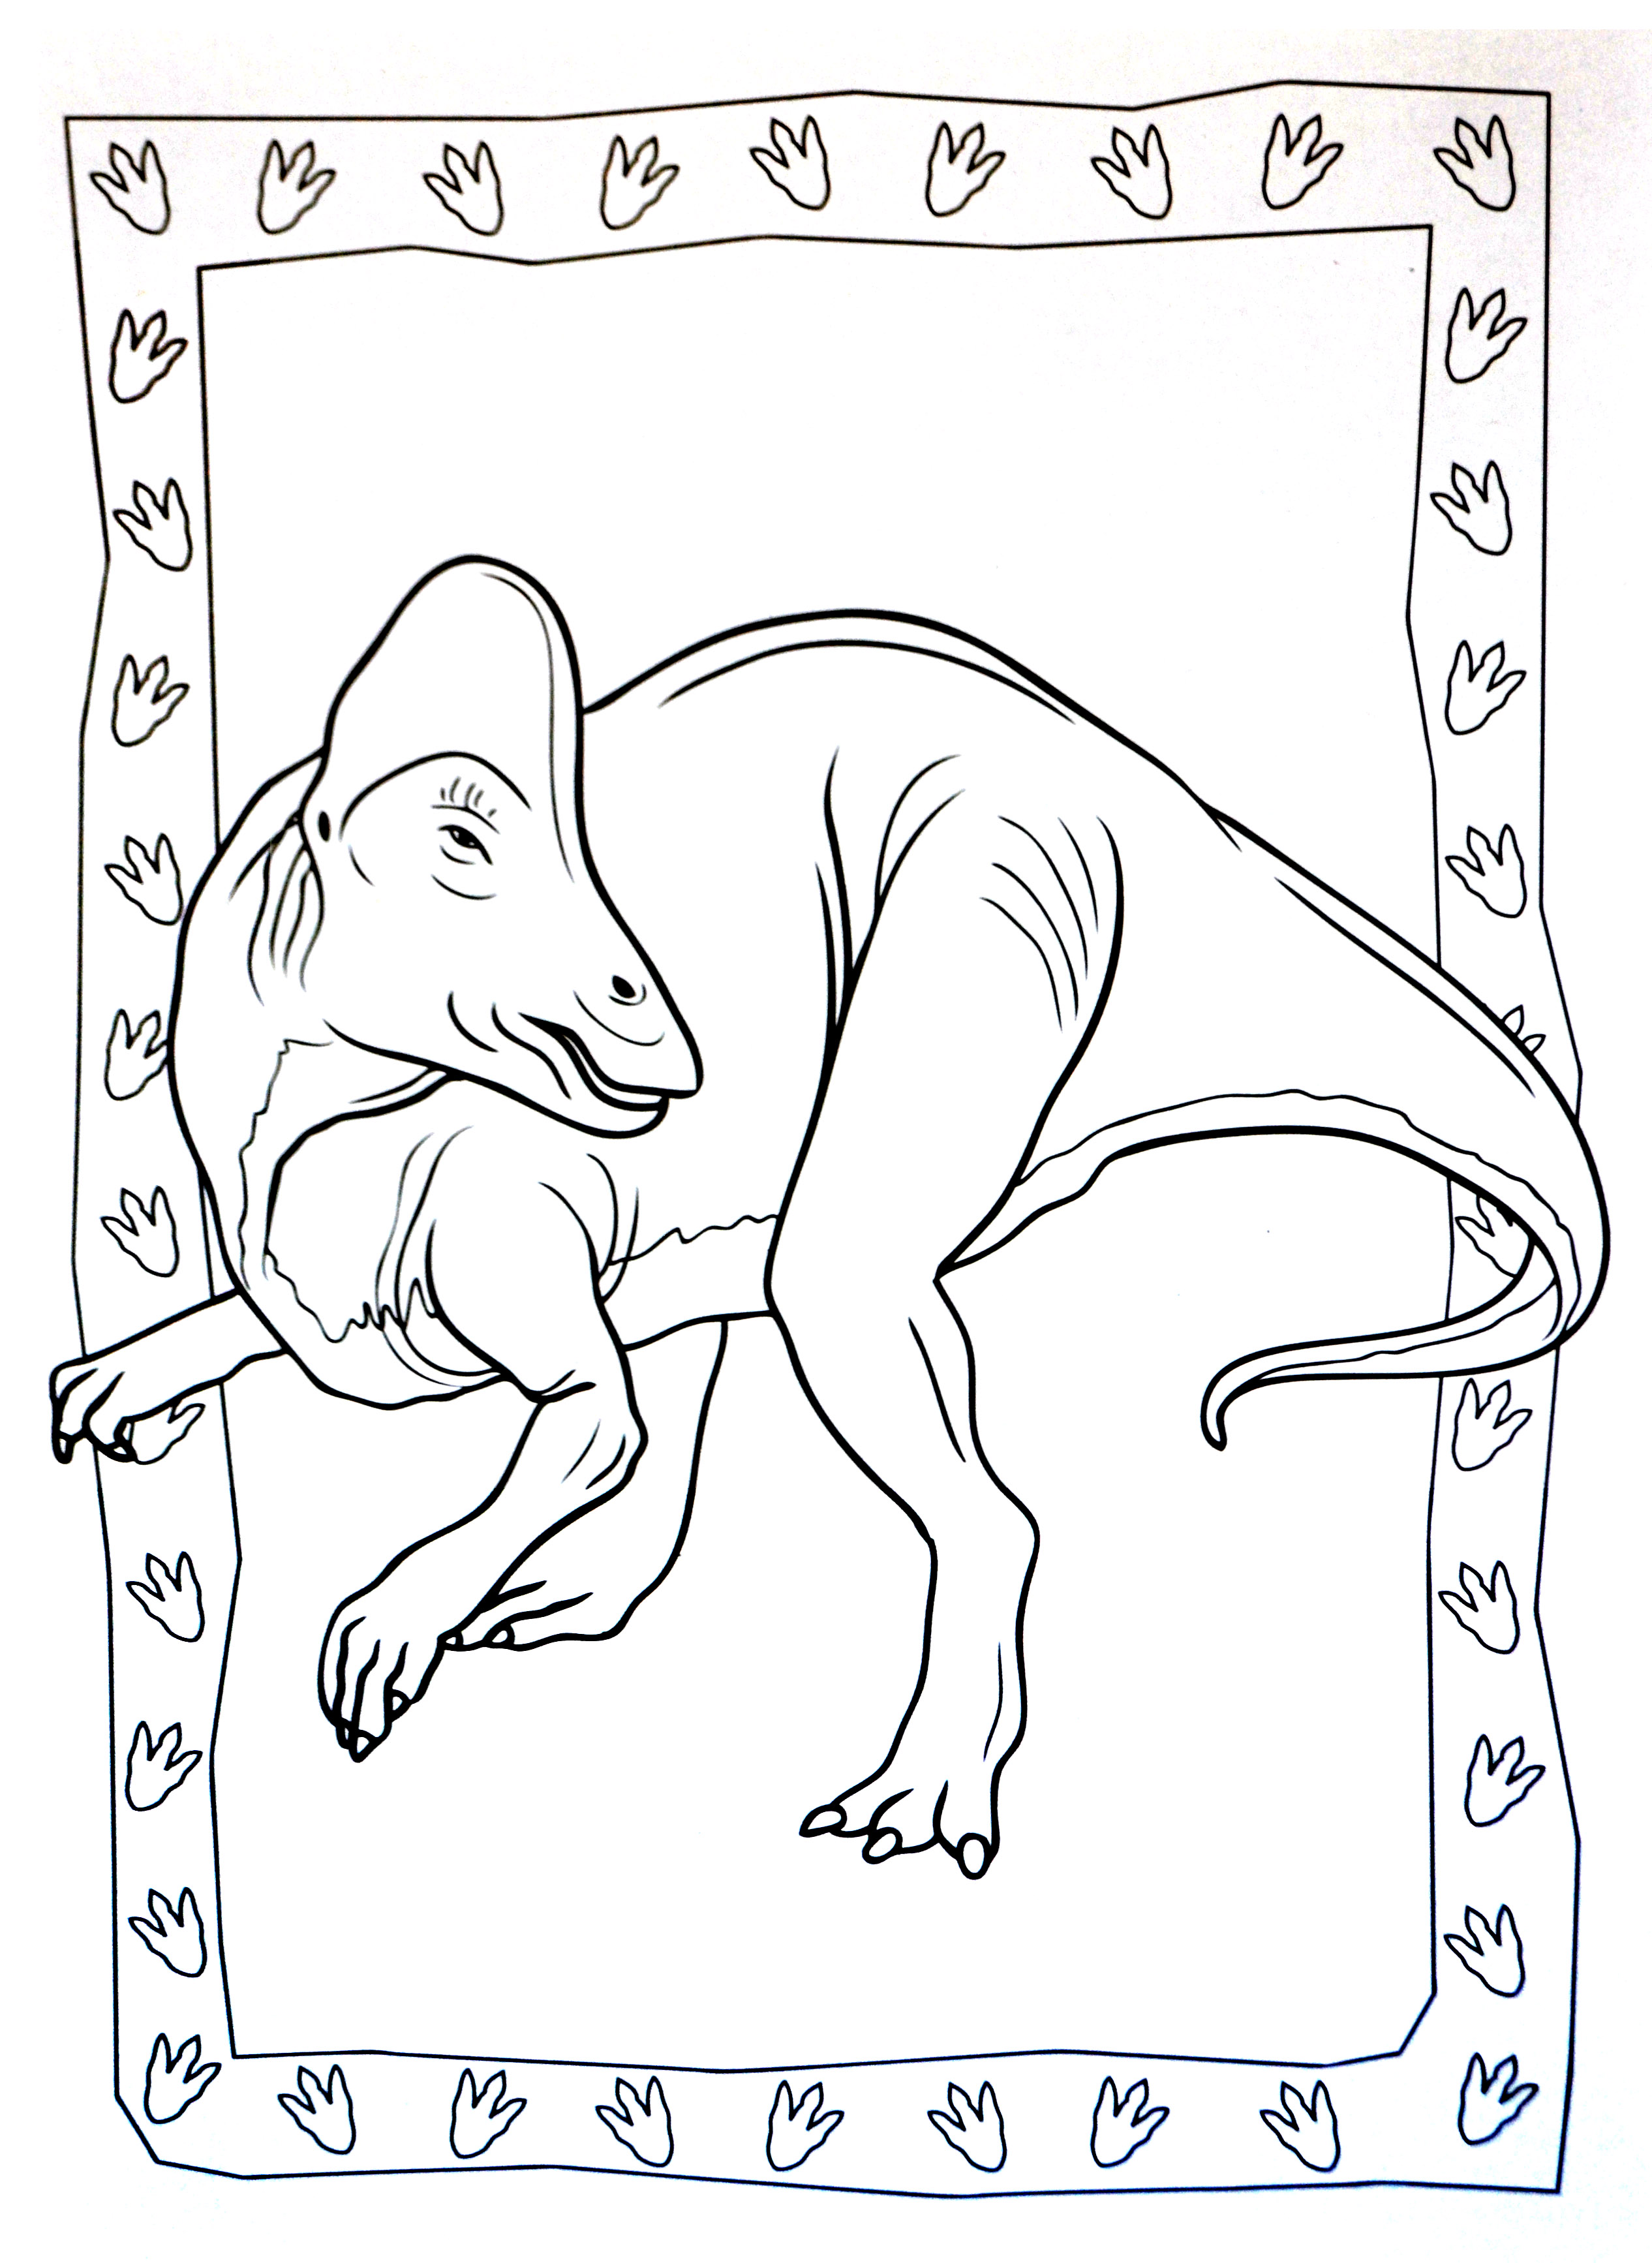 Dinosaurs coloring page to download : Hadrosauridae (Duck-Billed Dinosaur)